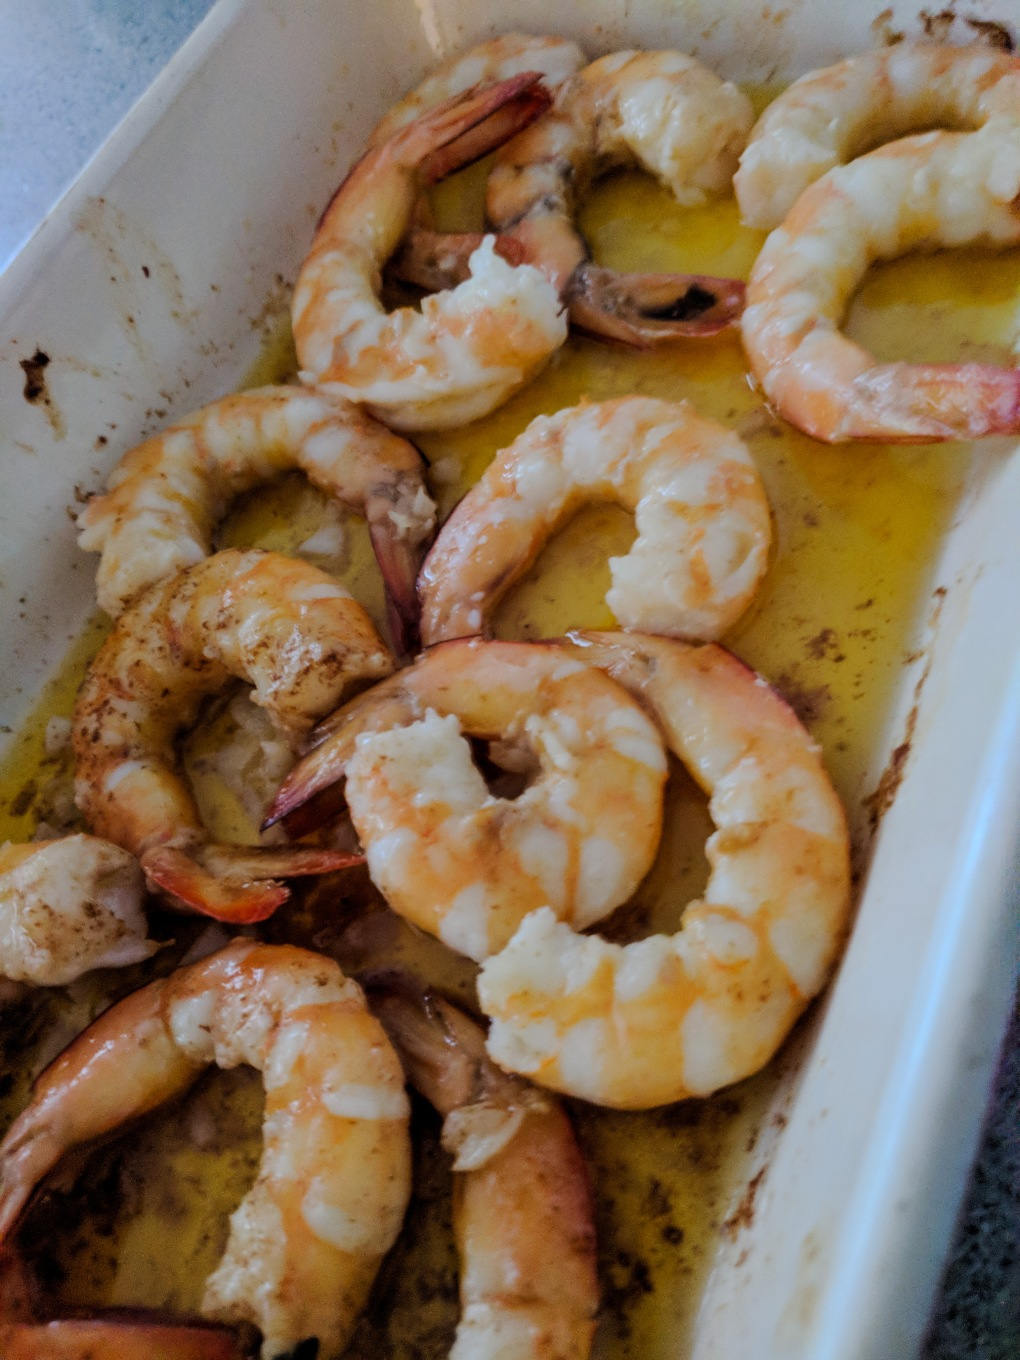 Garlic prawns ready to eat